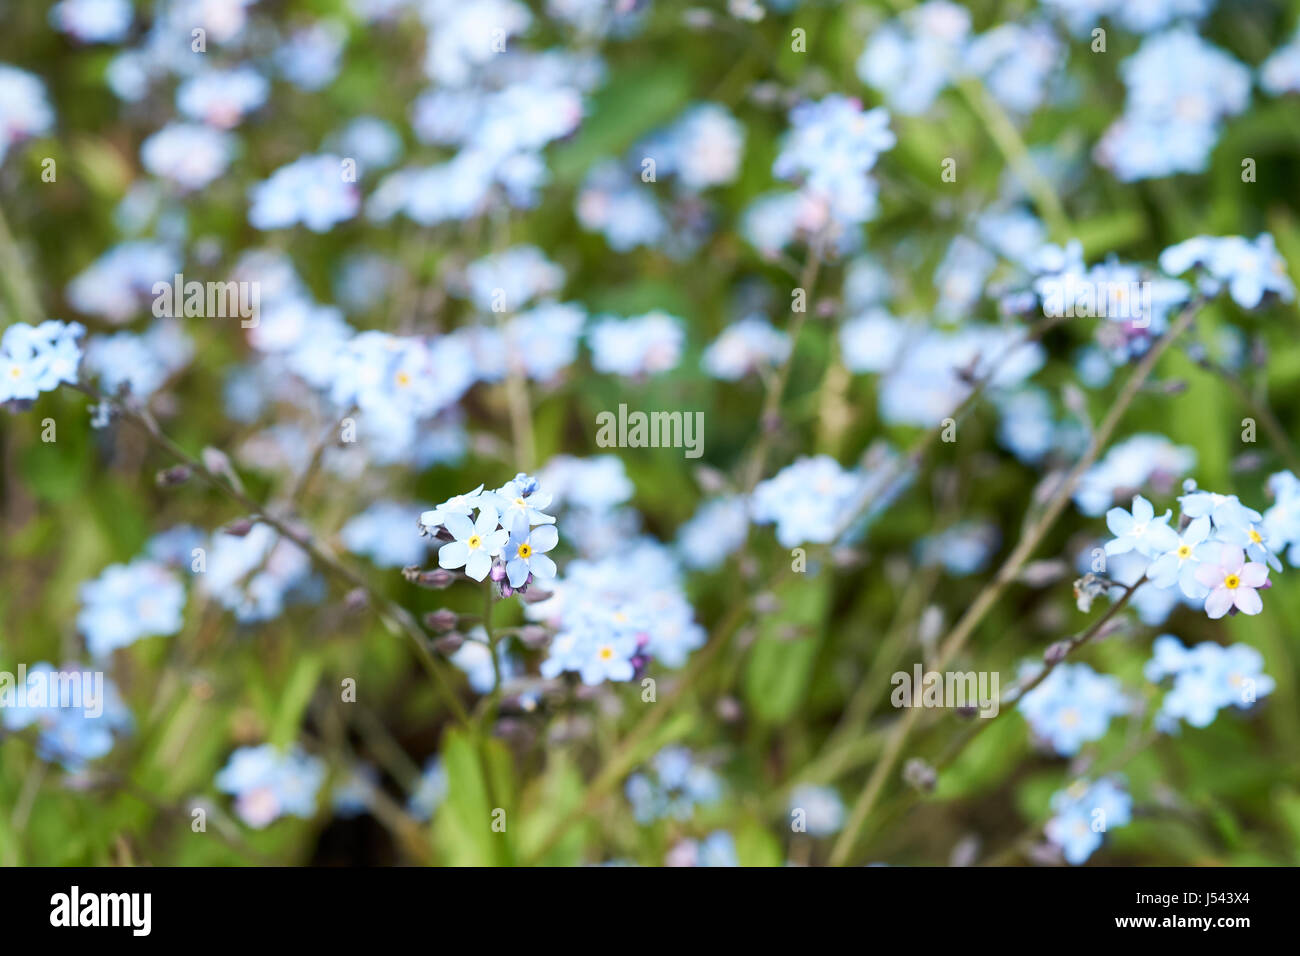 Blue flowered water forget-me-not (Myosotis scorpioides) plants growing in a English country garden flowerbed, UK. Stock Photo